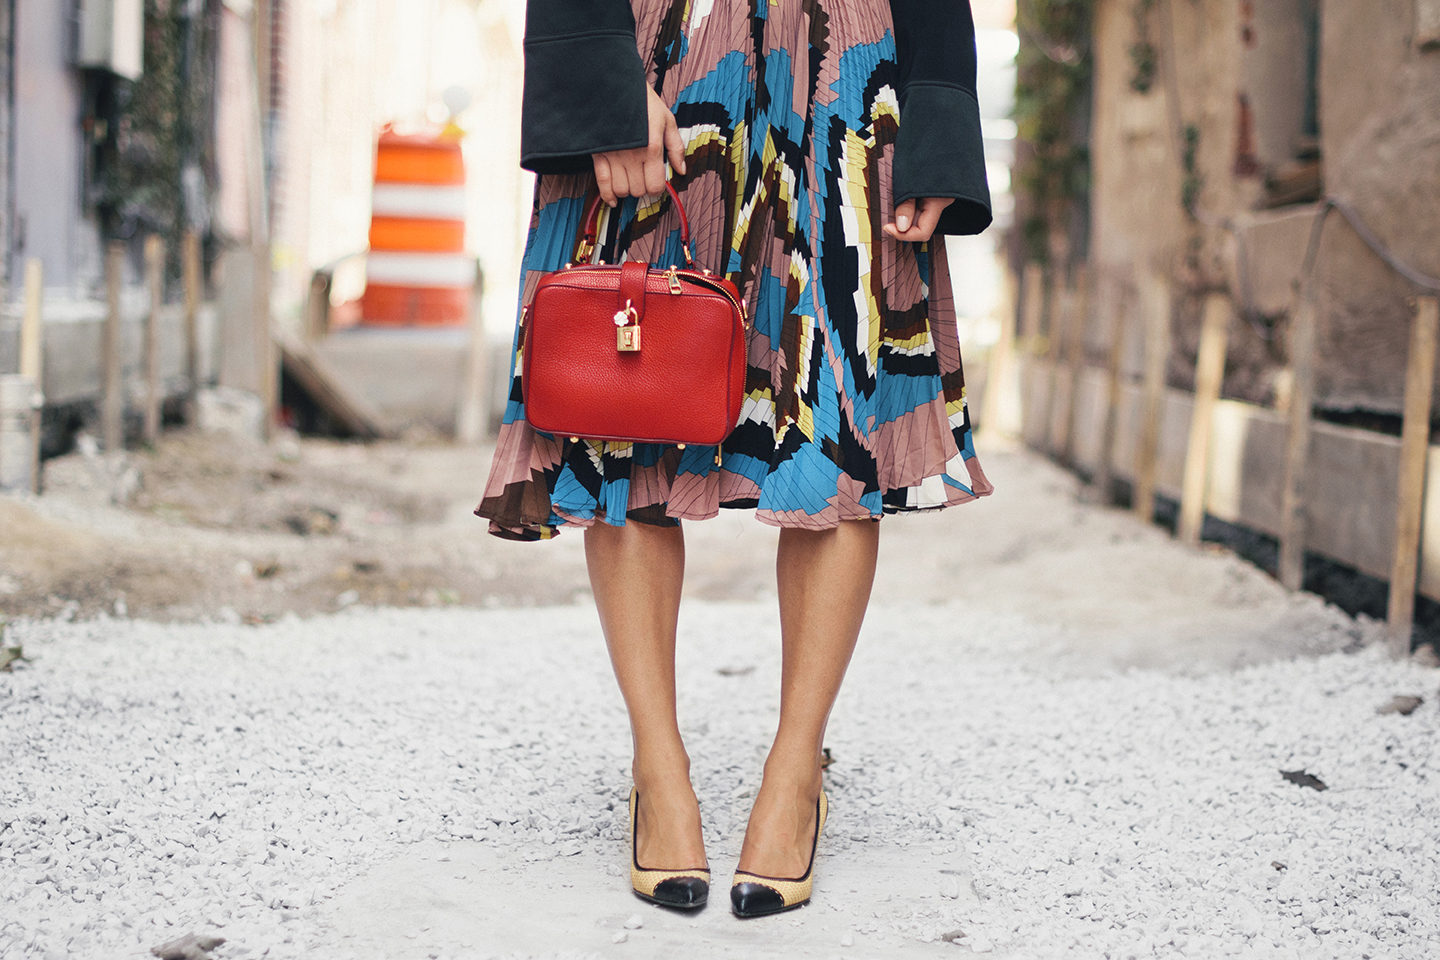 dolce-and-gabbana-purse-generation-bliss-skirt-prada-shoes